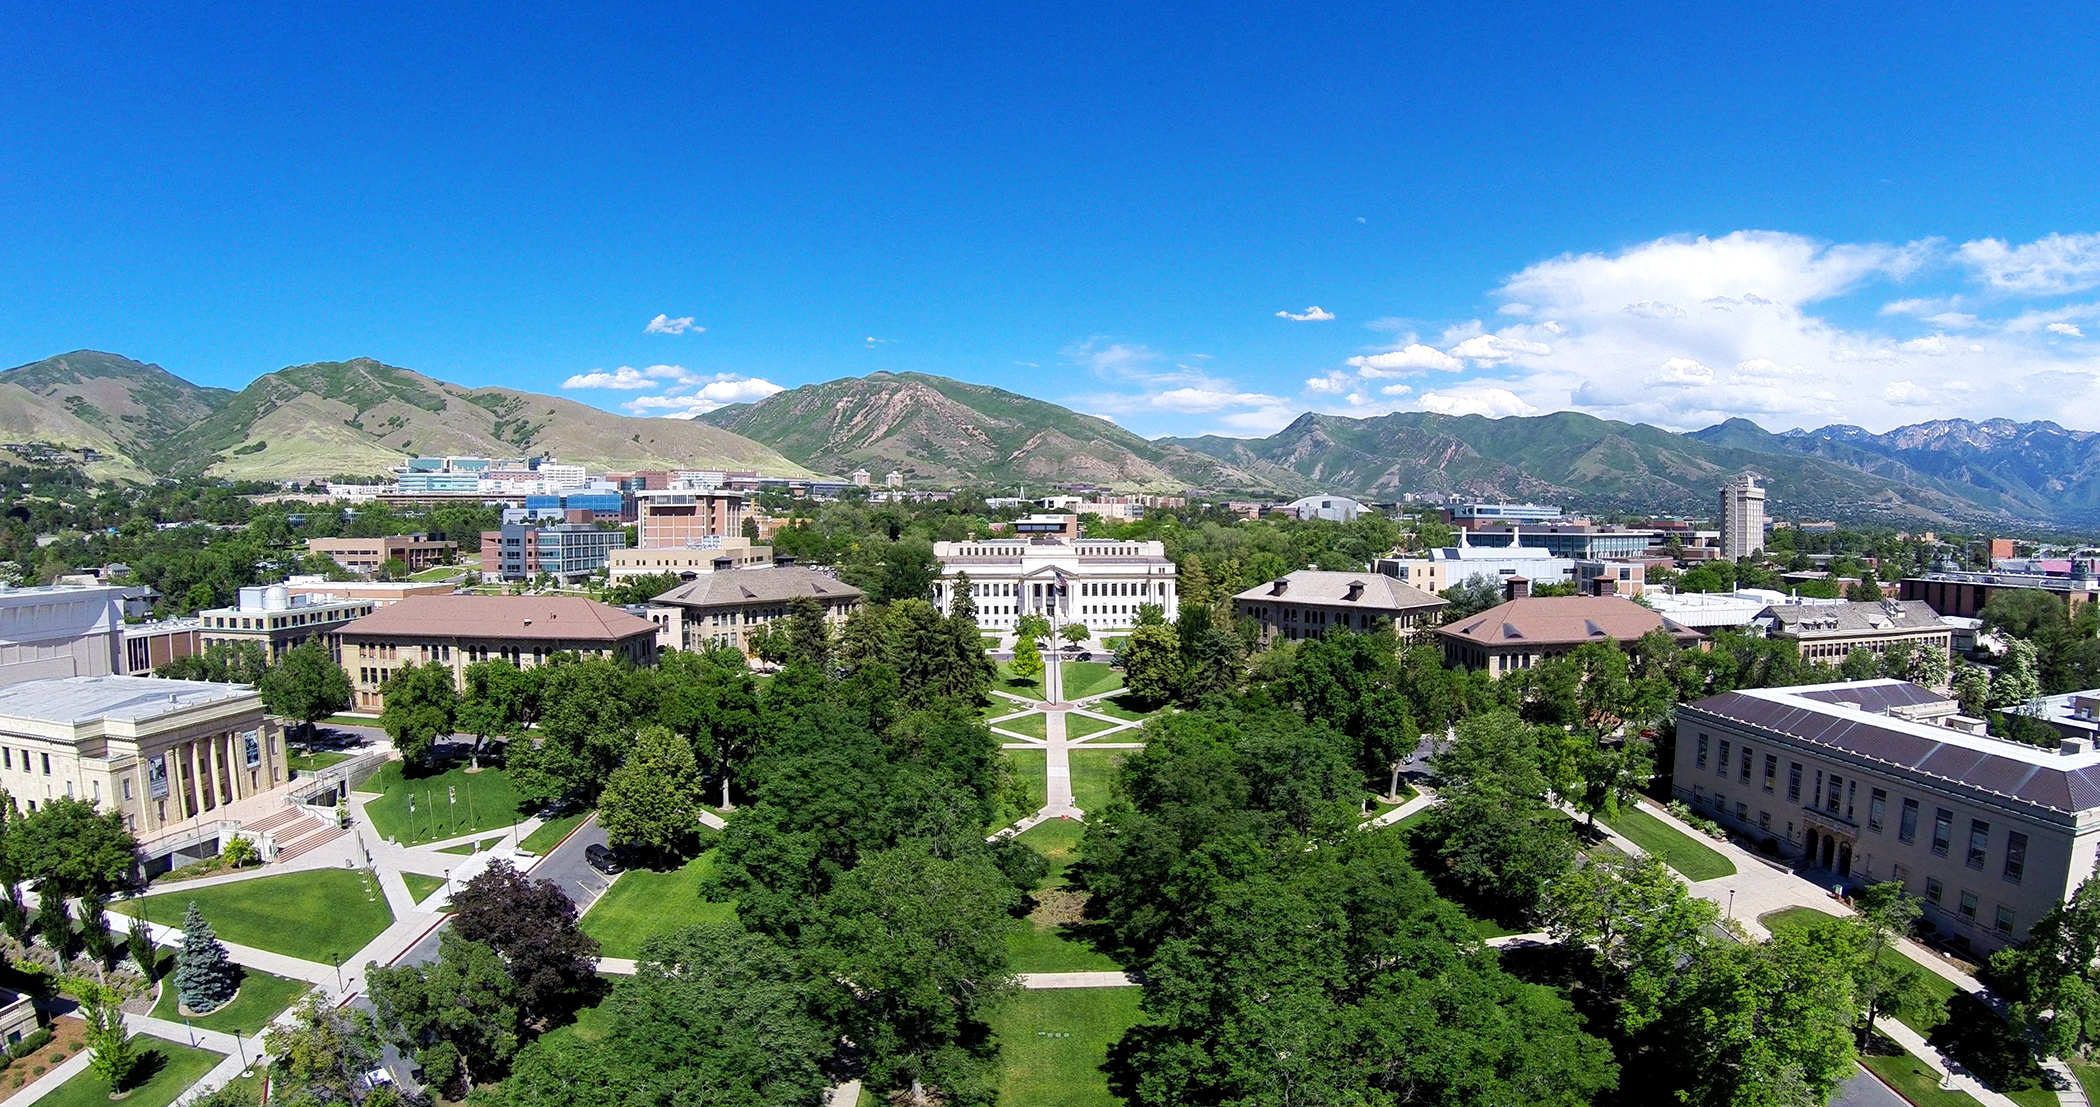 With more than 8,000 trees on campus, the University of Utah is home to the State Arboretum of Utah and recently received Tree Campus USA recognition by the Arbor Day Foundation, which honors colleges and universities for effective urban forest management and for engaging staff and students in conservation goals.